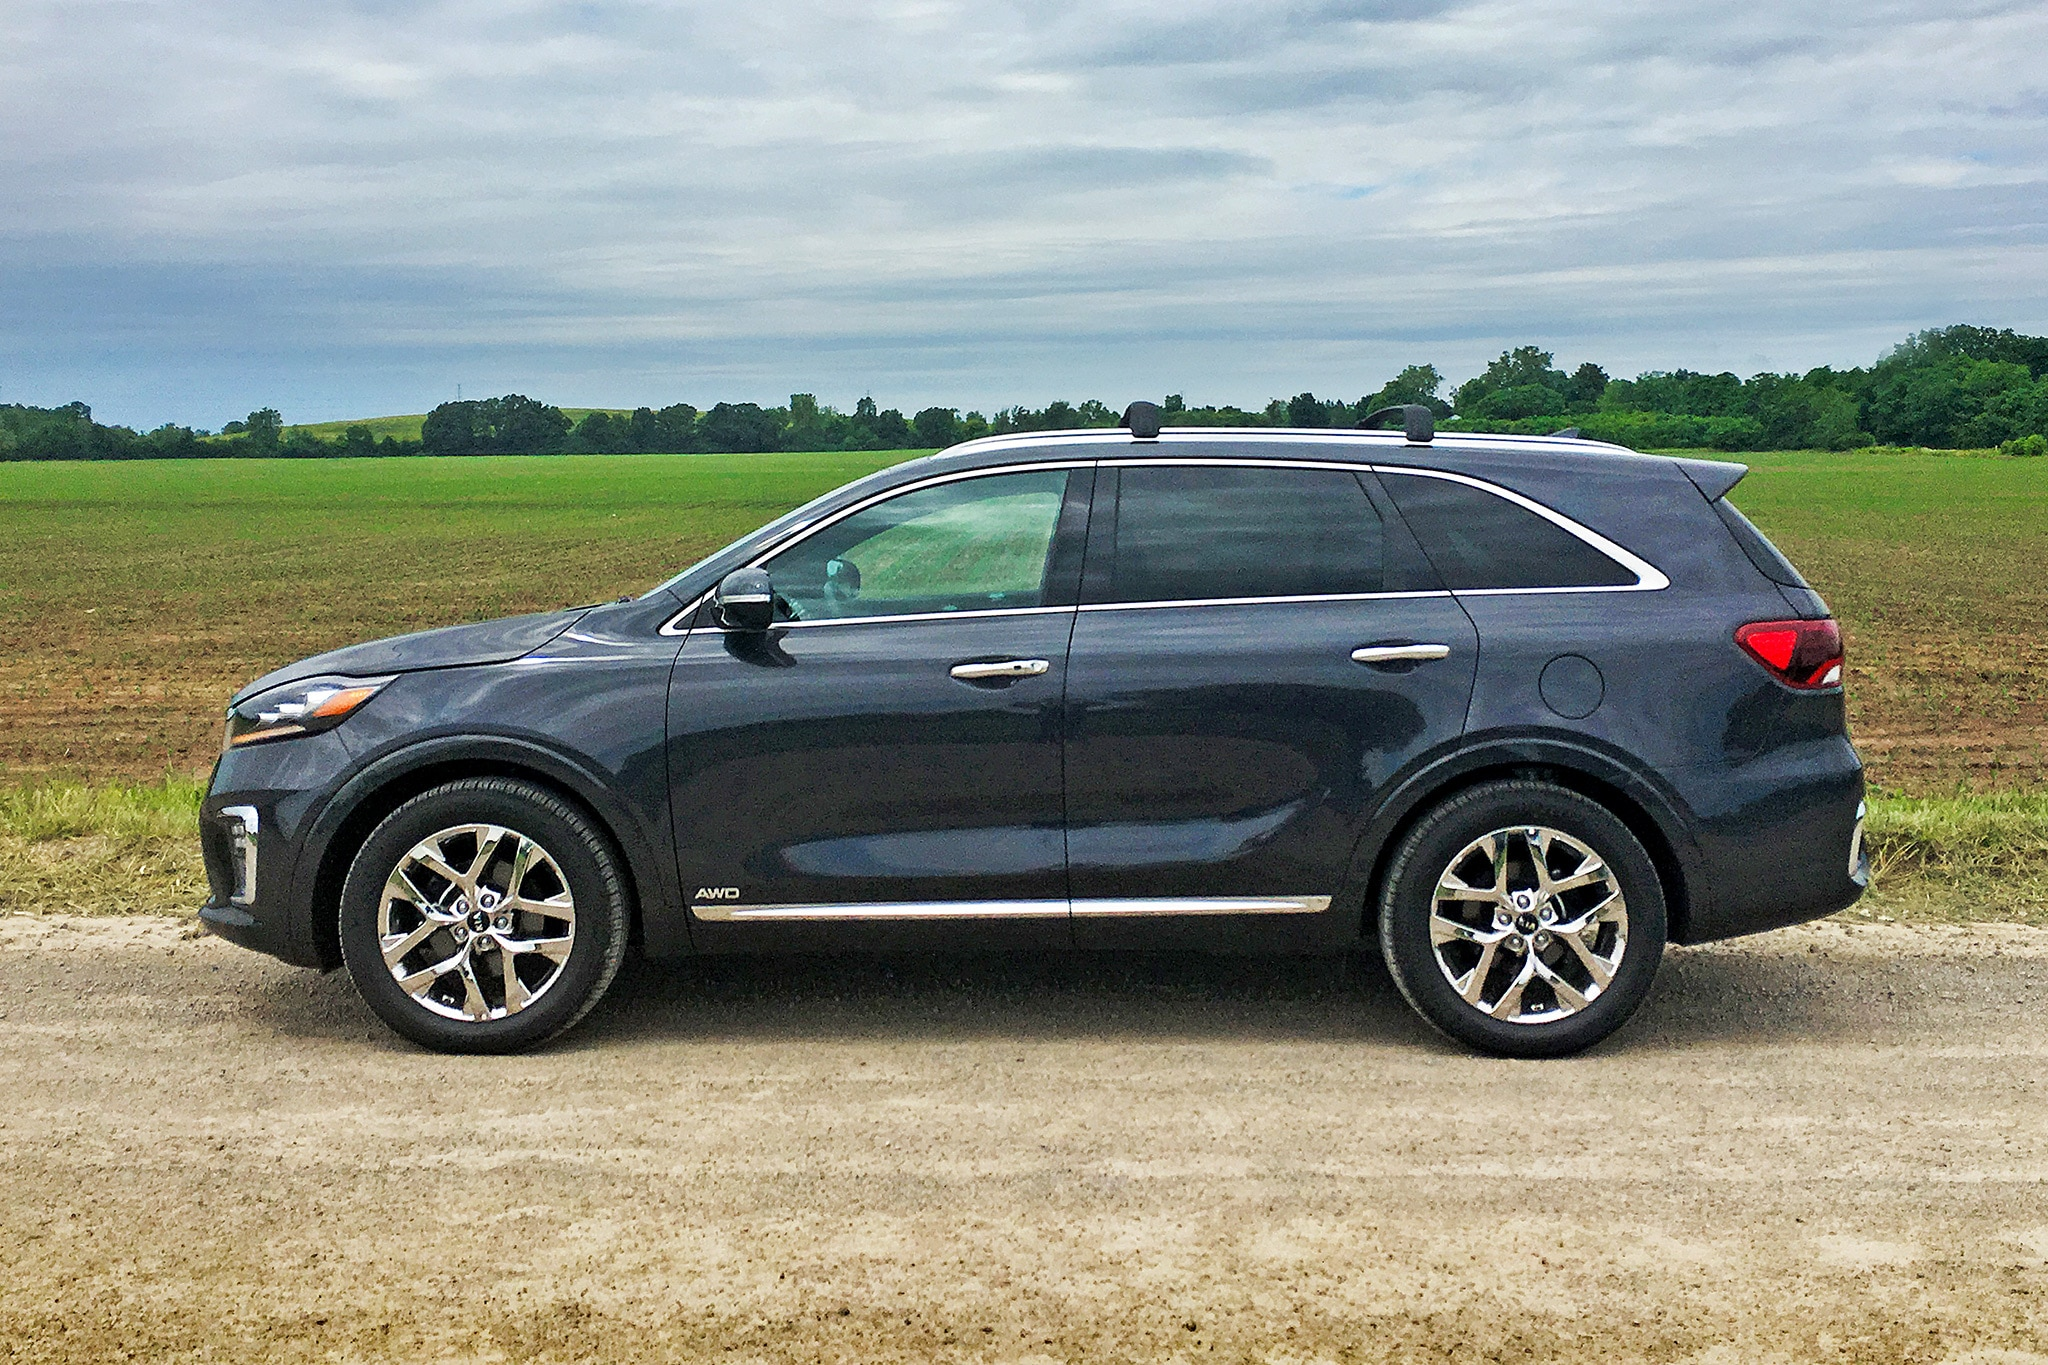 2019 Kia Sorento SXL AWD One Week Review